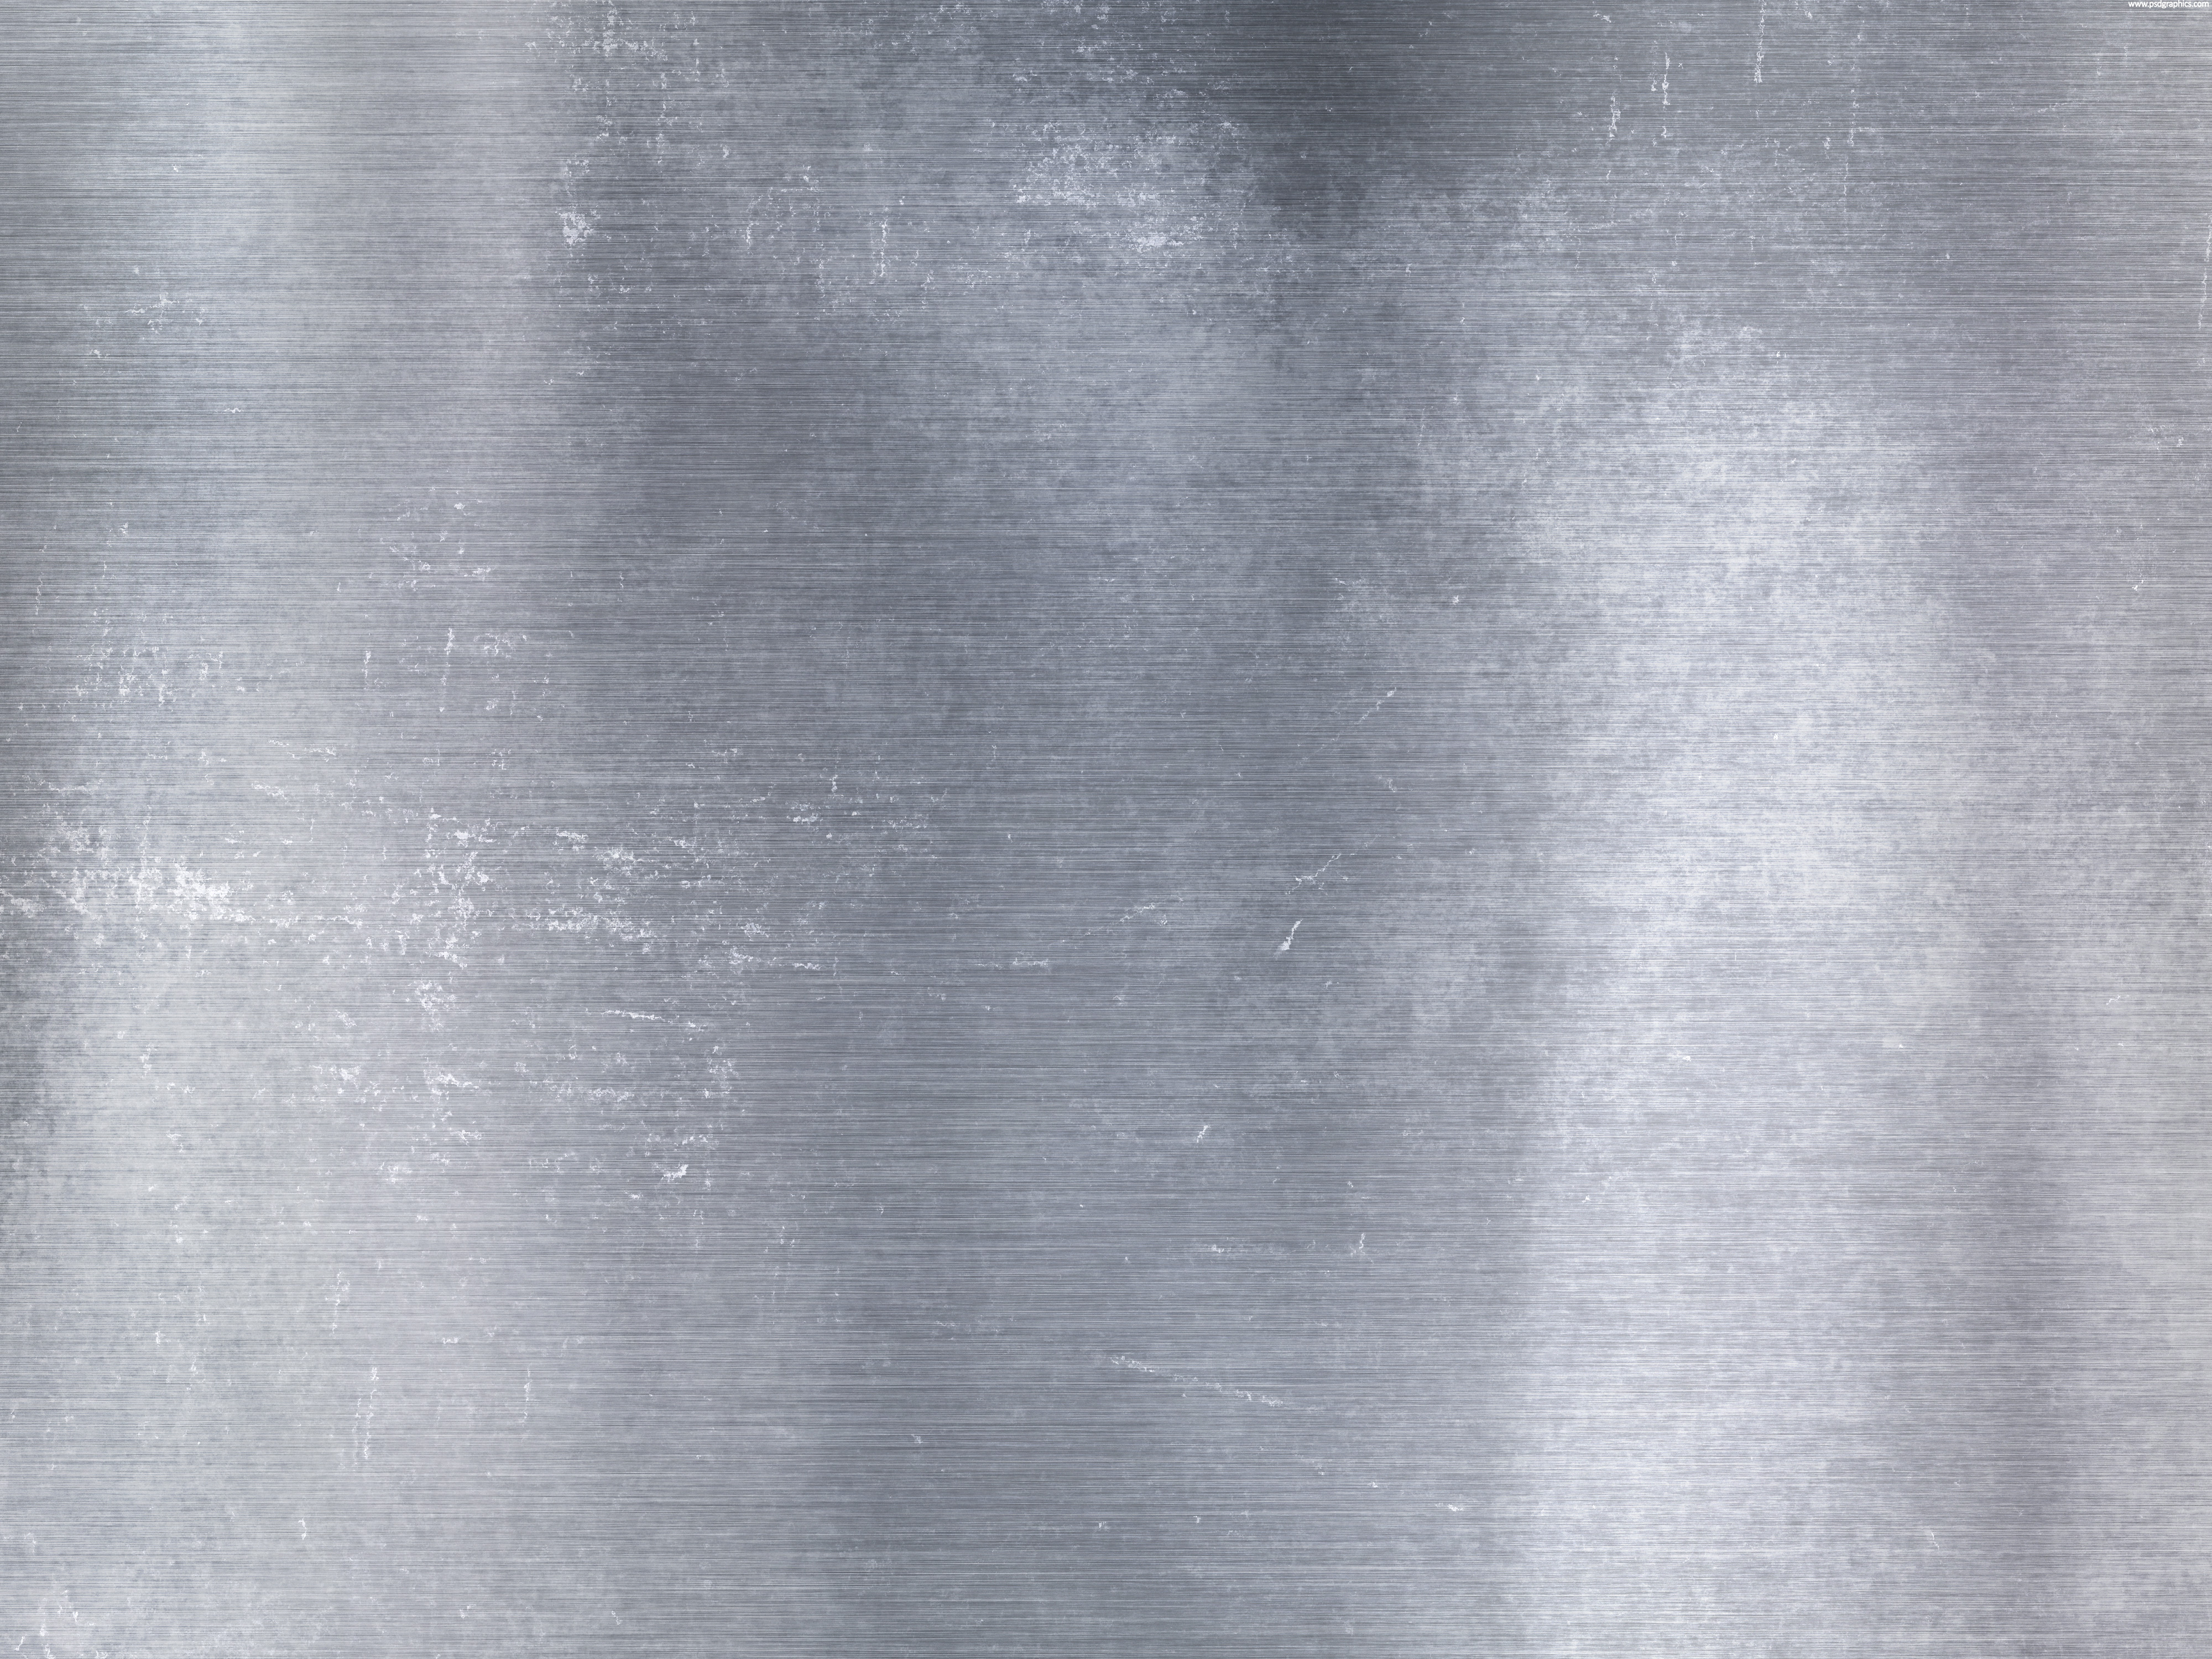 background scratched metal texture brushed gold metal texture aluminum 4000x3000